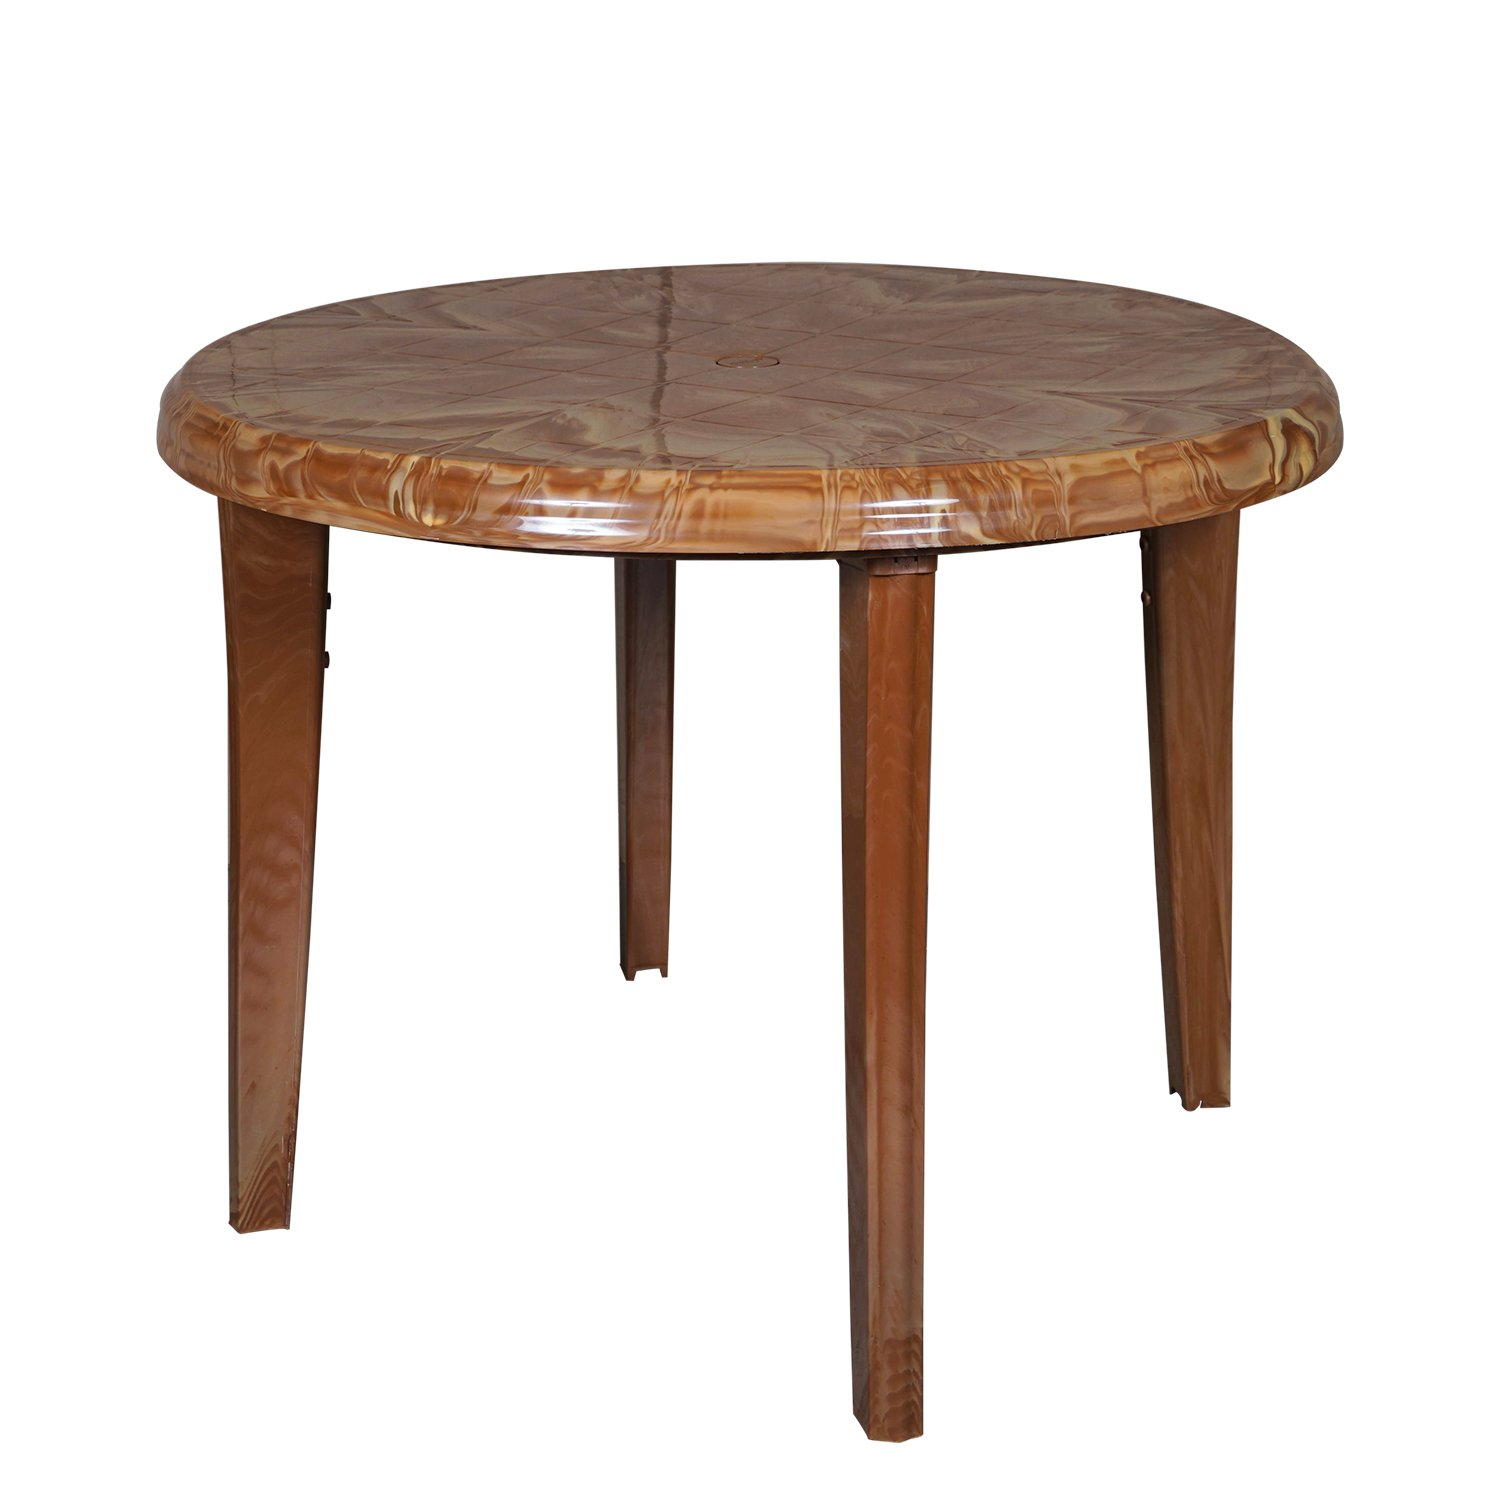 Dining Tables Buy Dining Tables line at Low Prices in India